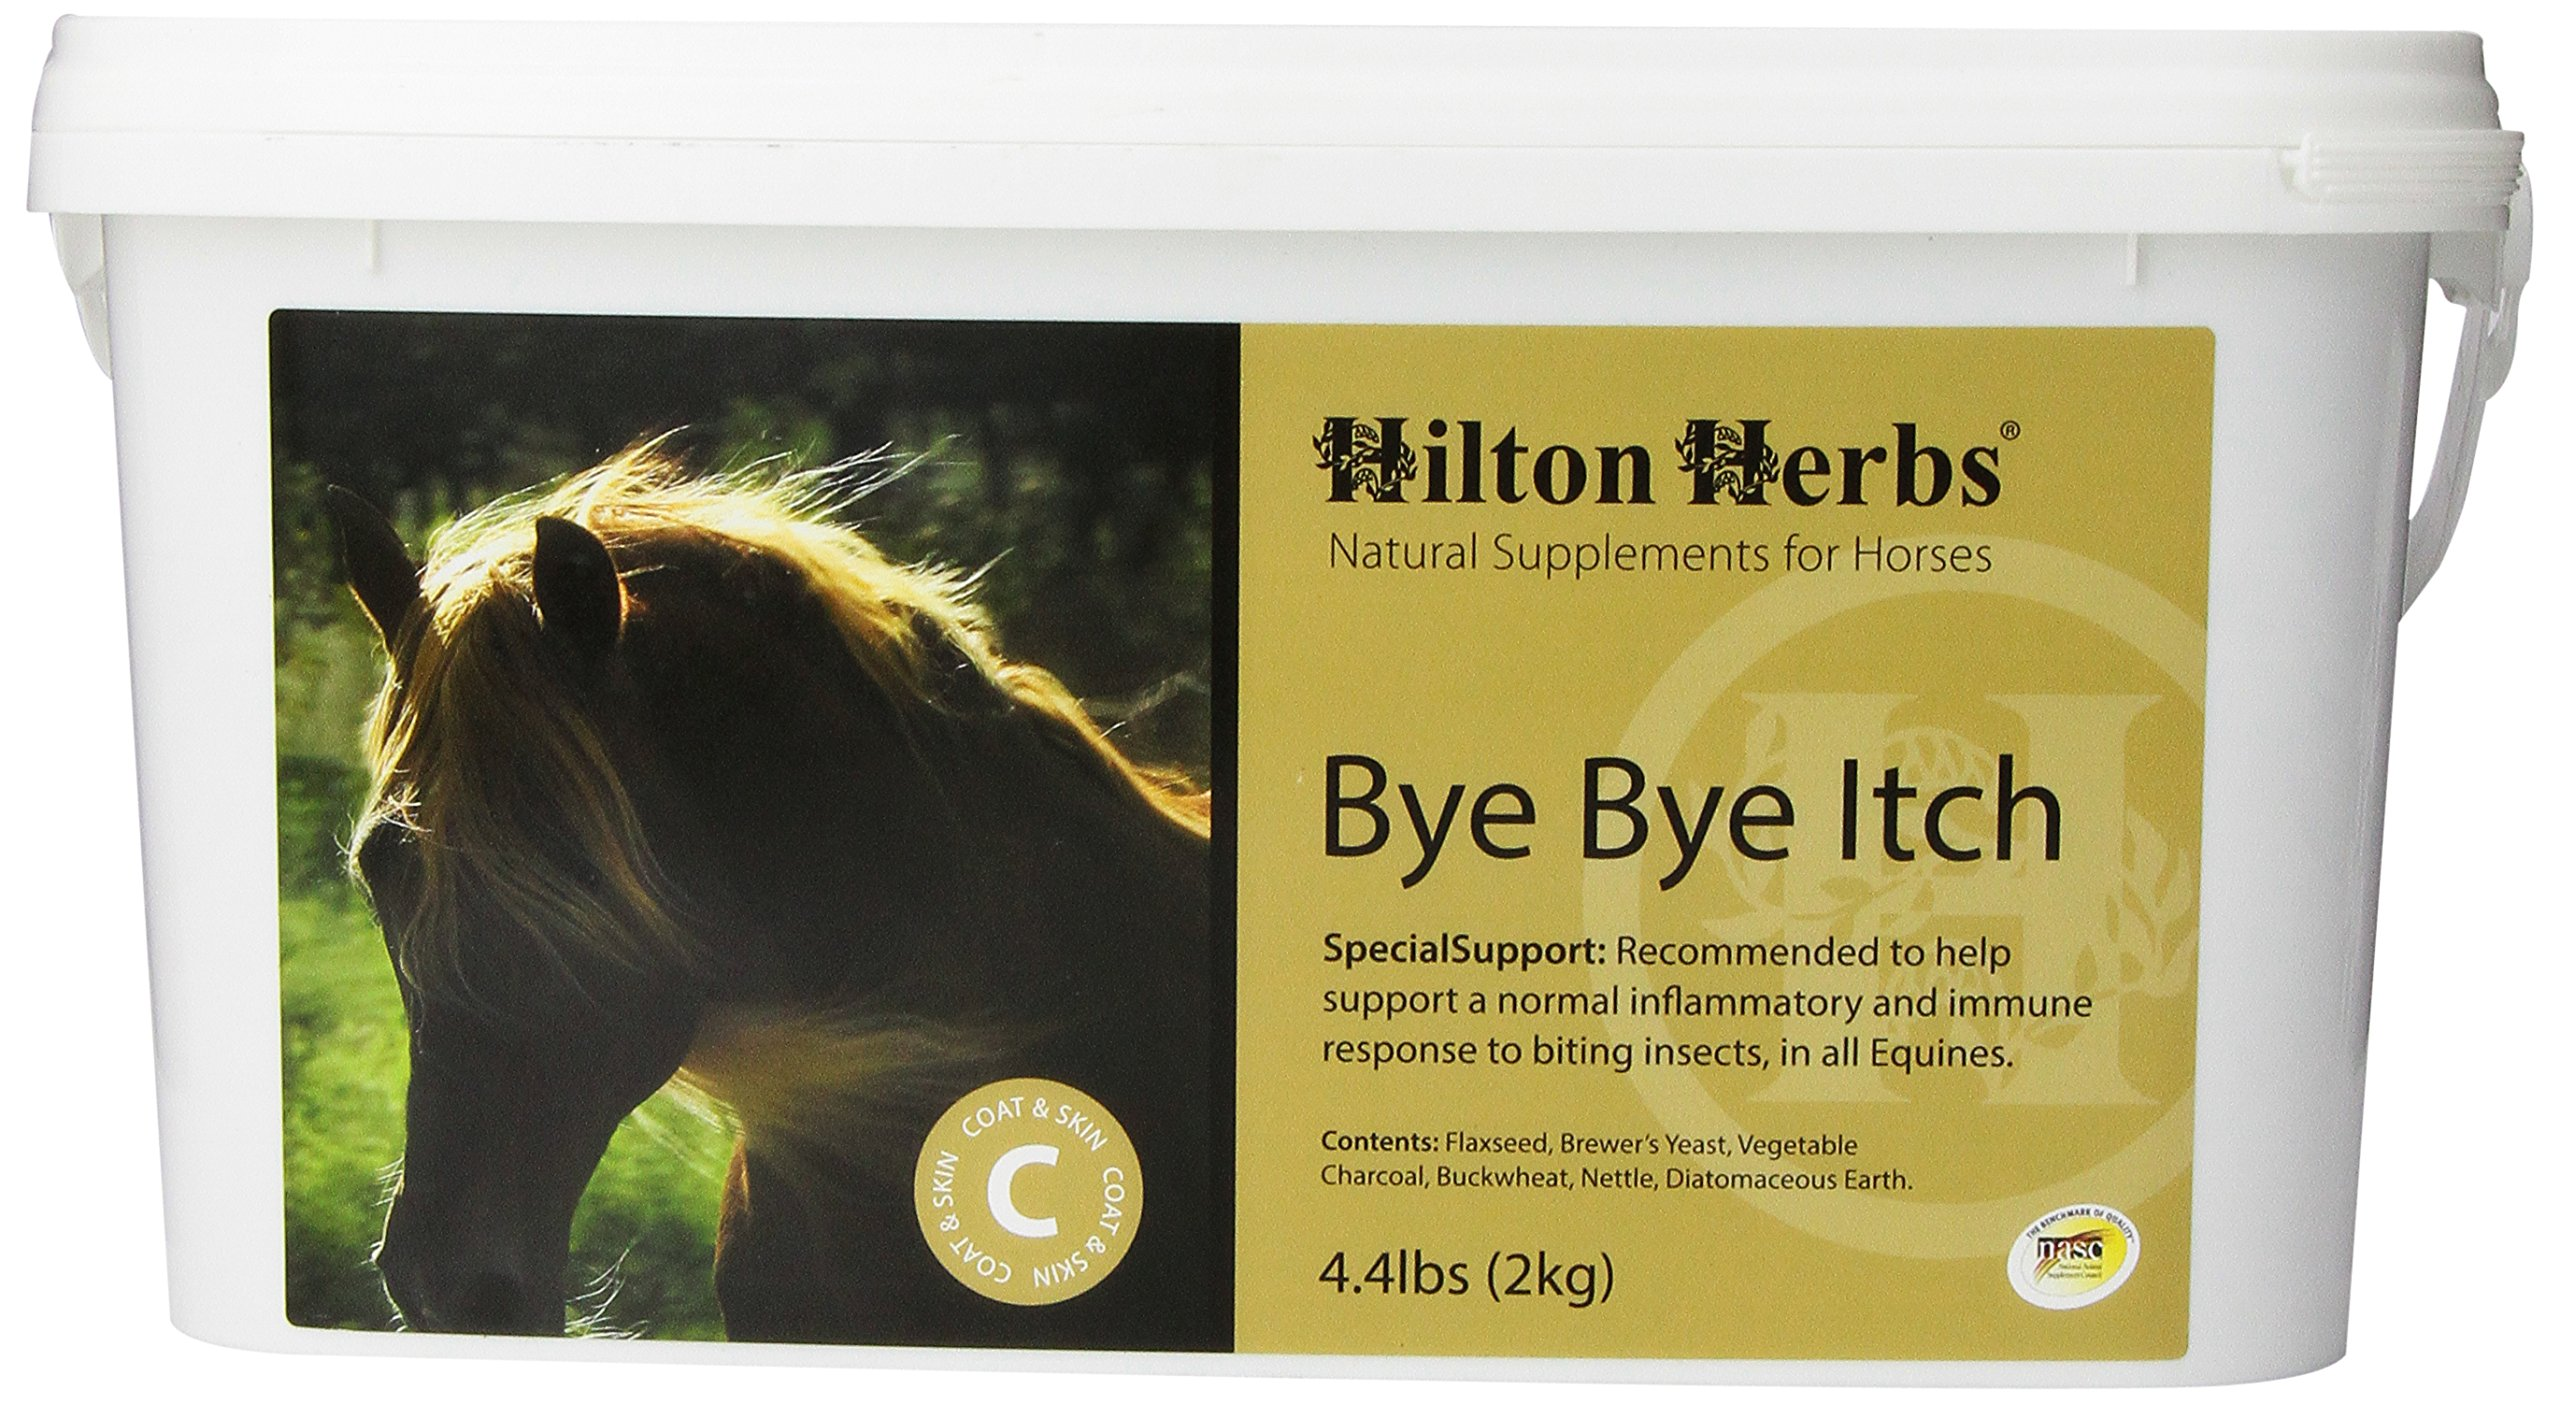 Hilton Herbs Bye Bye Itch Seasonal Skin Allergy Supplement for Horses, 2kg Tub by Hilton Herbs (Image #1)